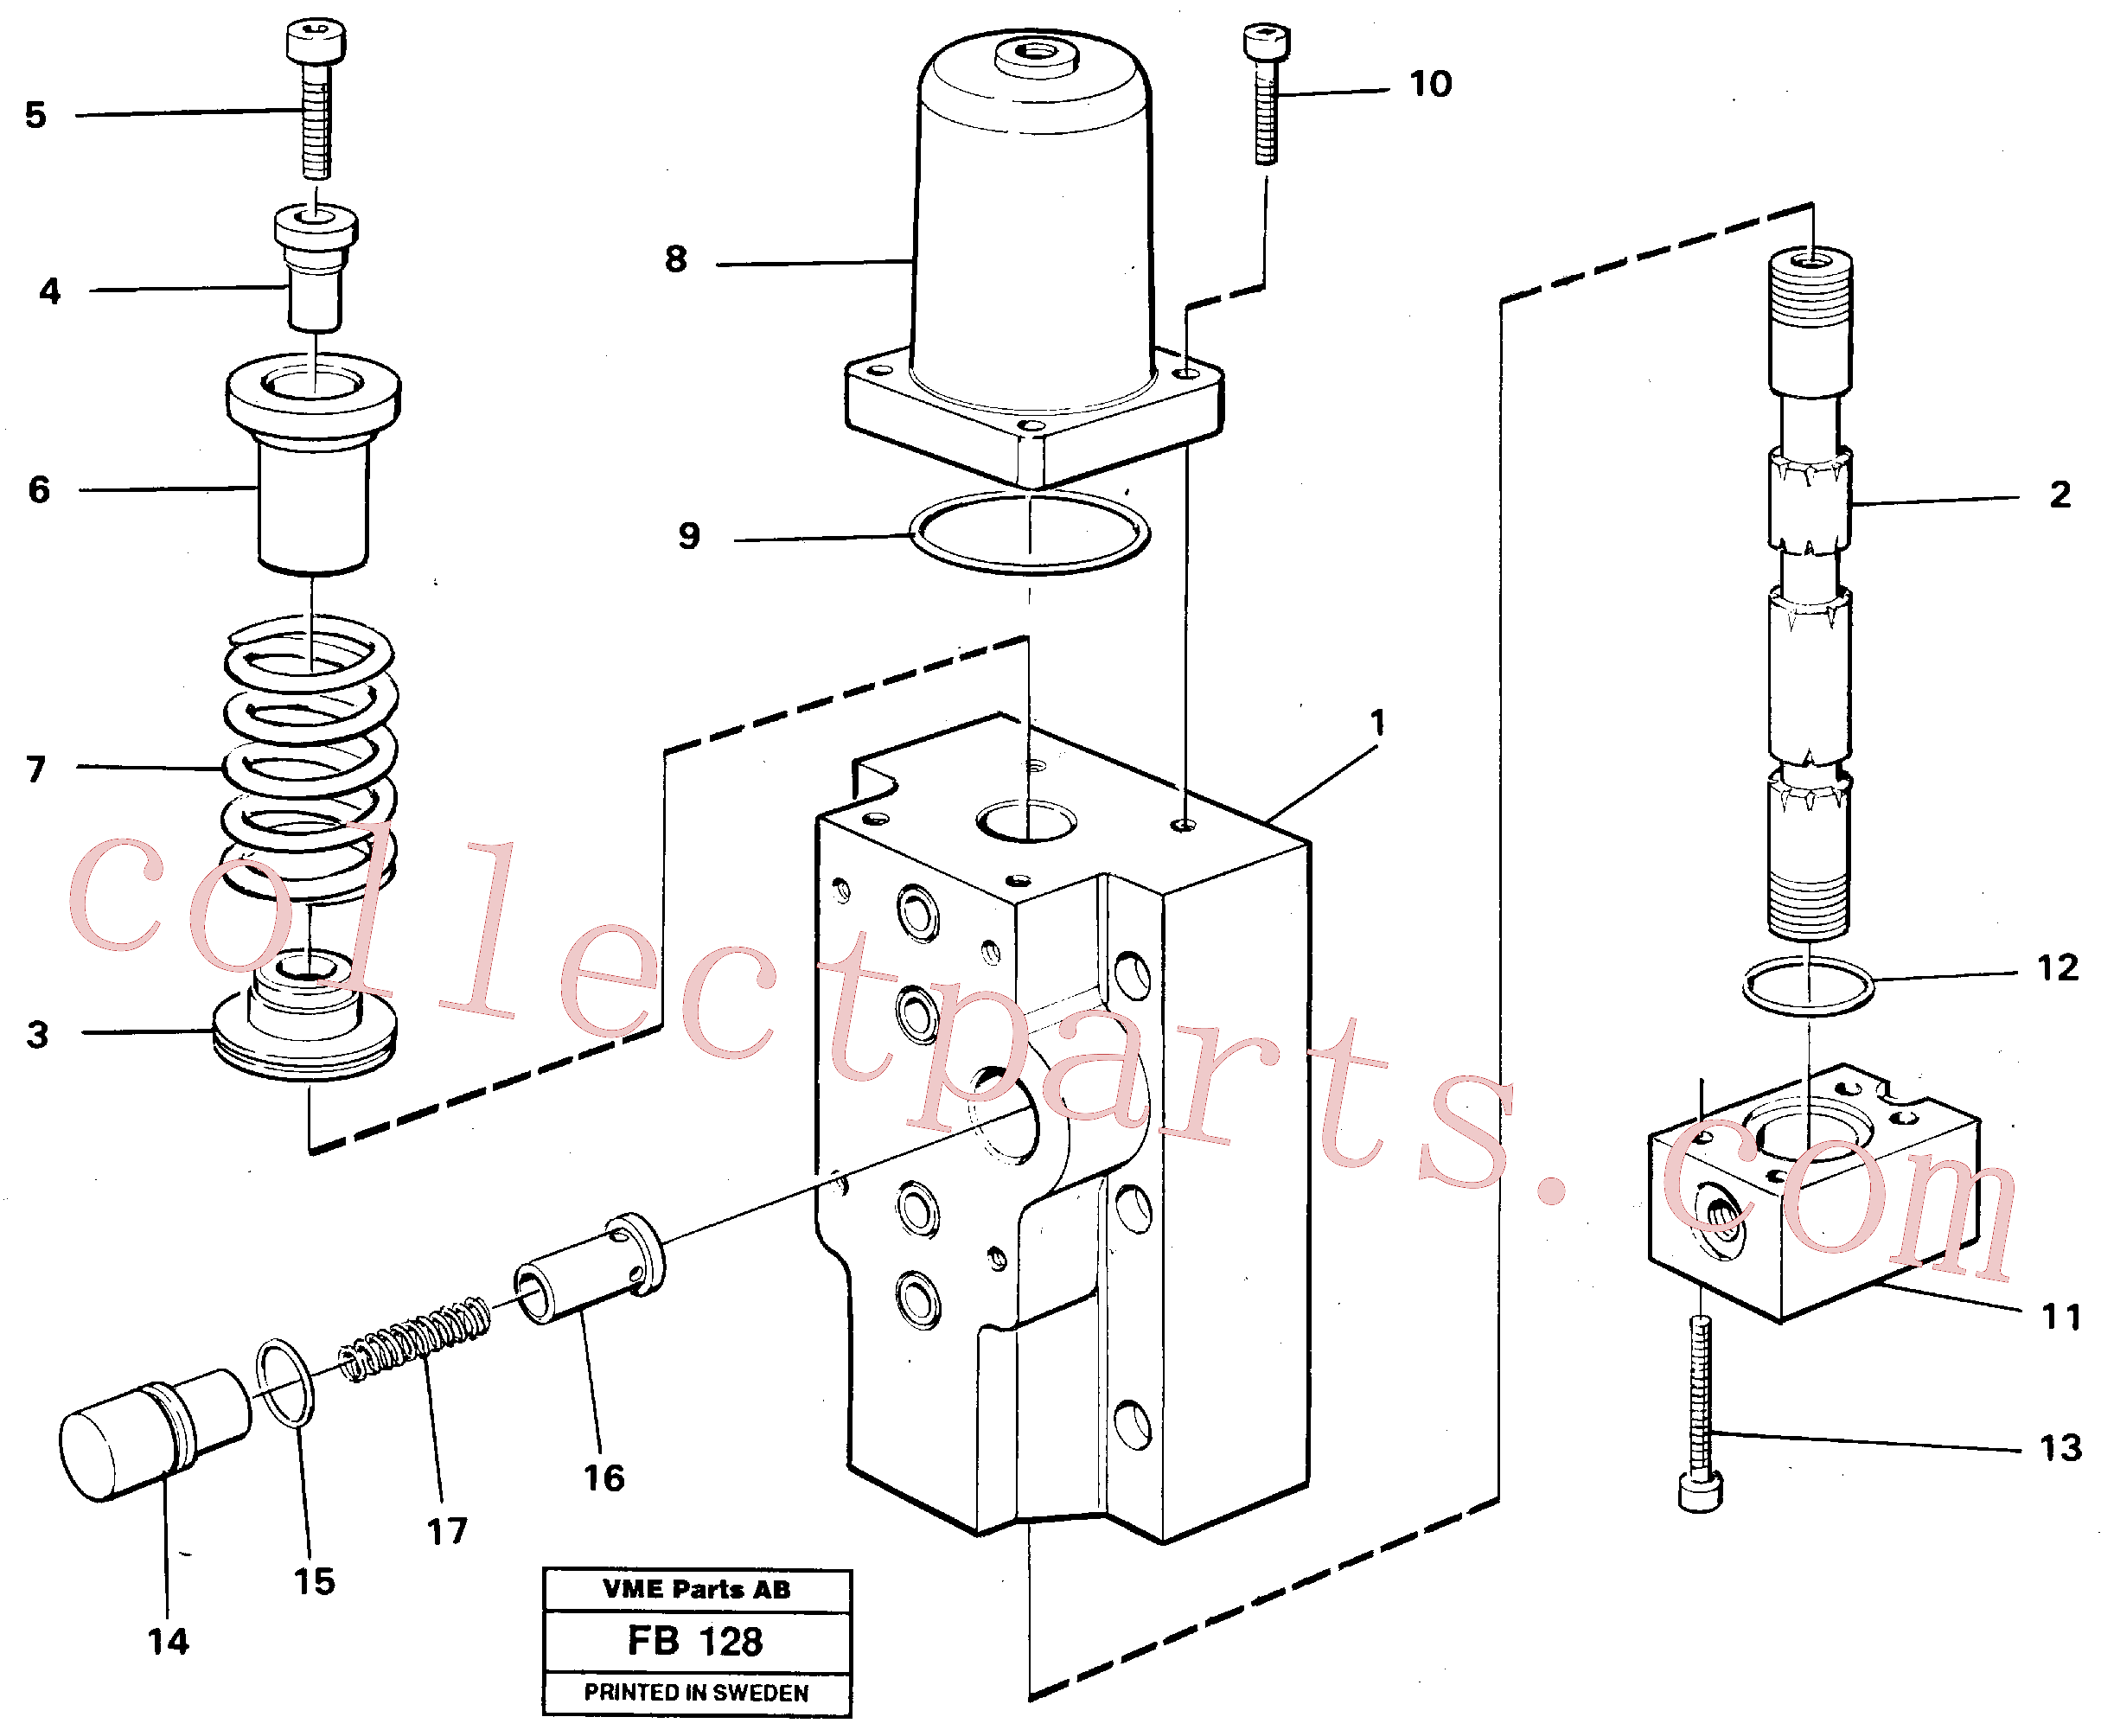 VOE14261819 for Volvo Four-way valves Primary(FB128 assembly)